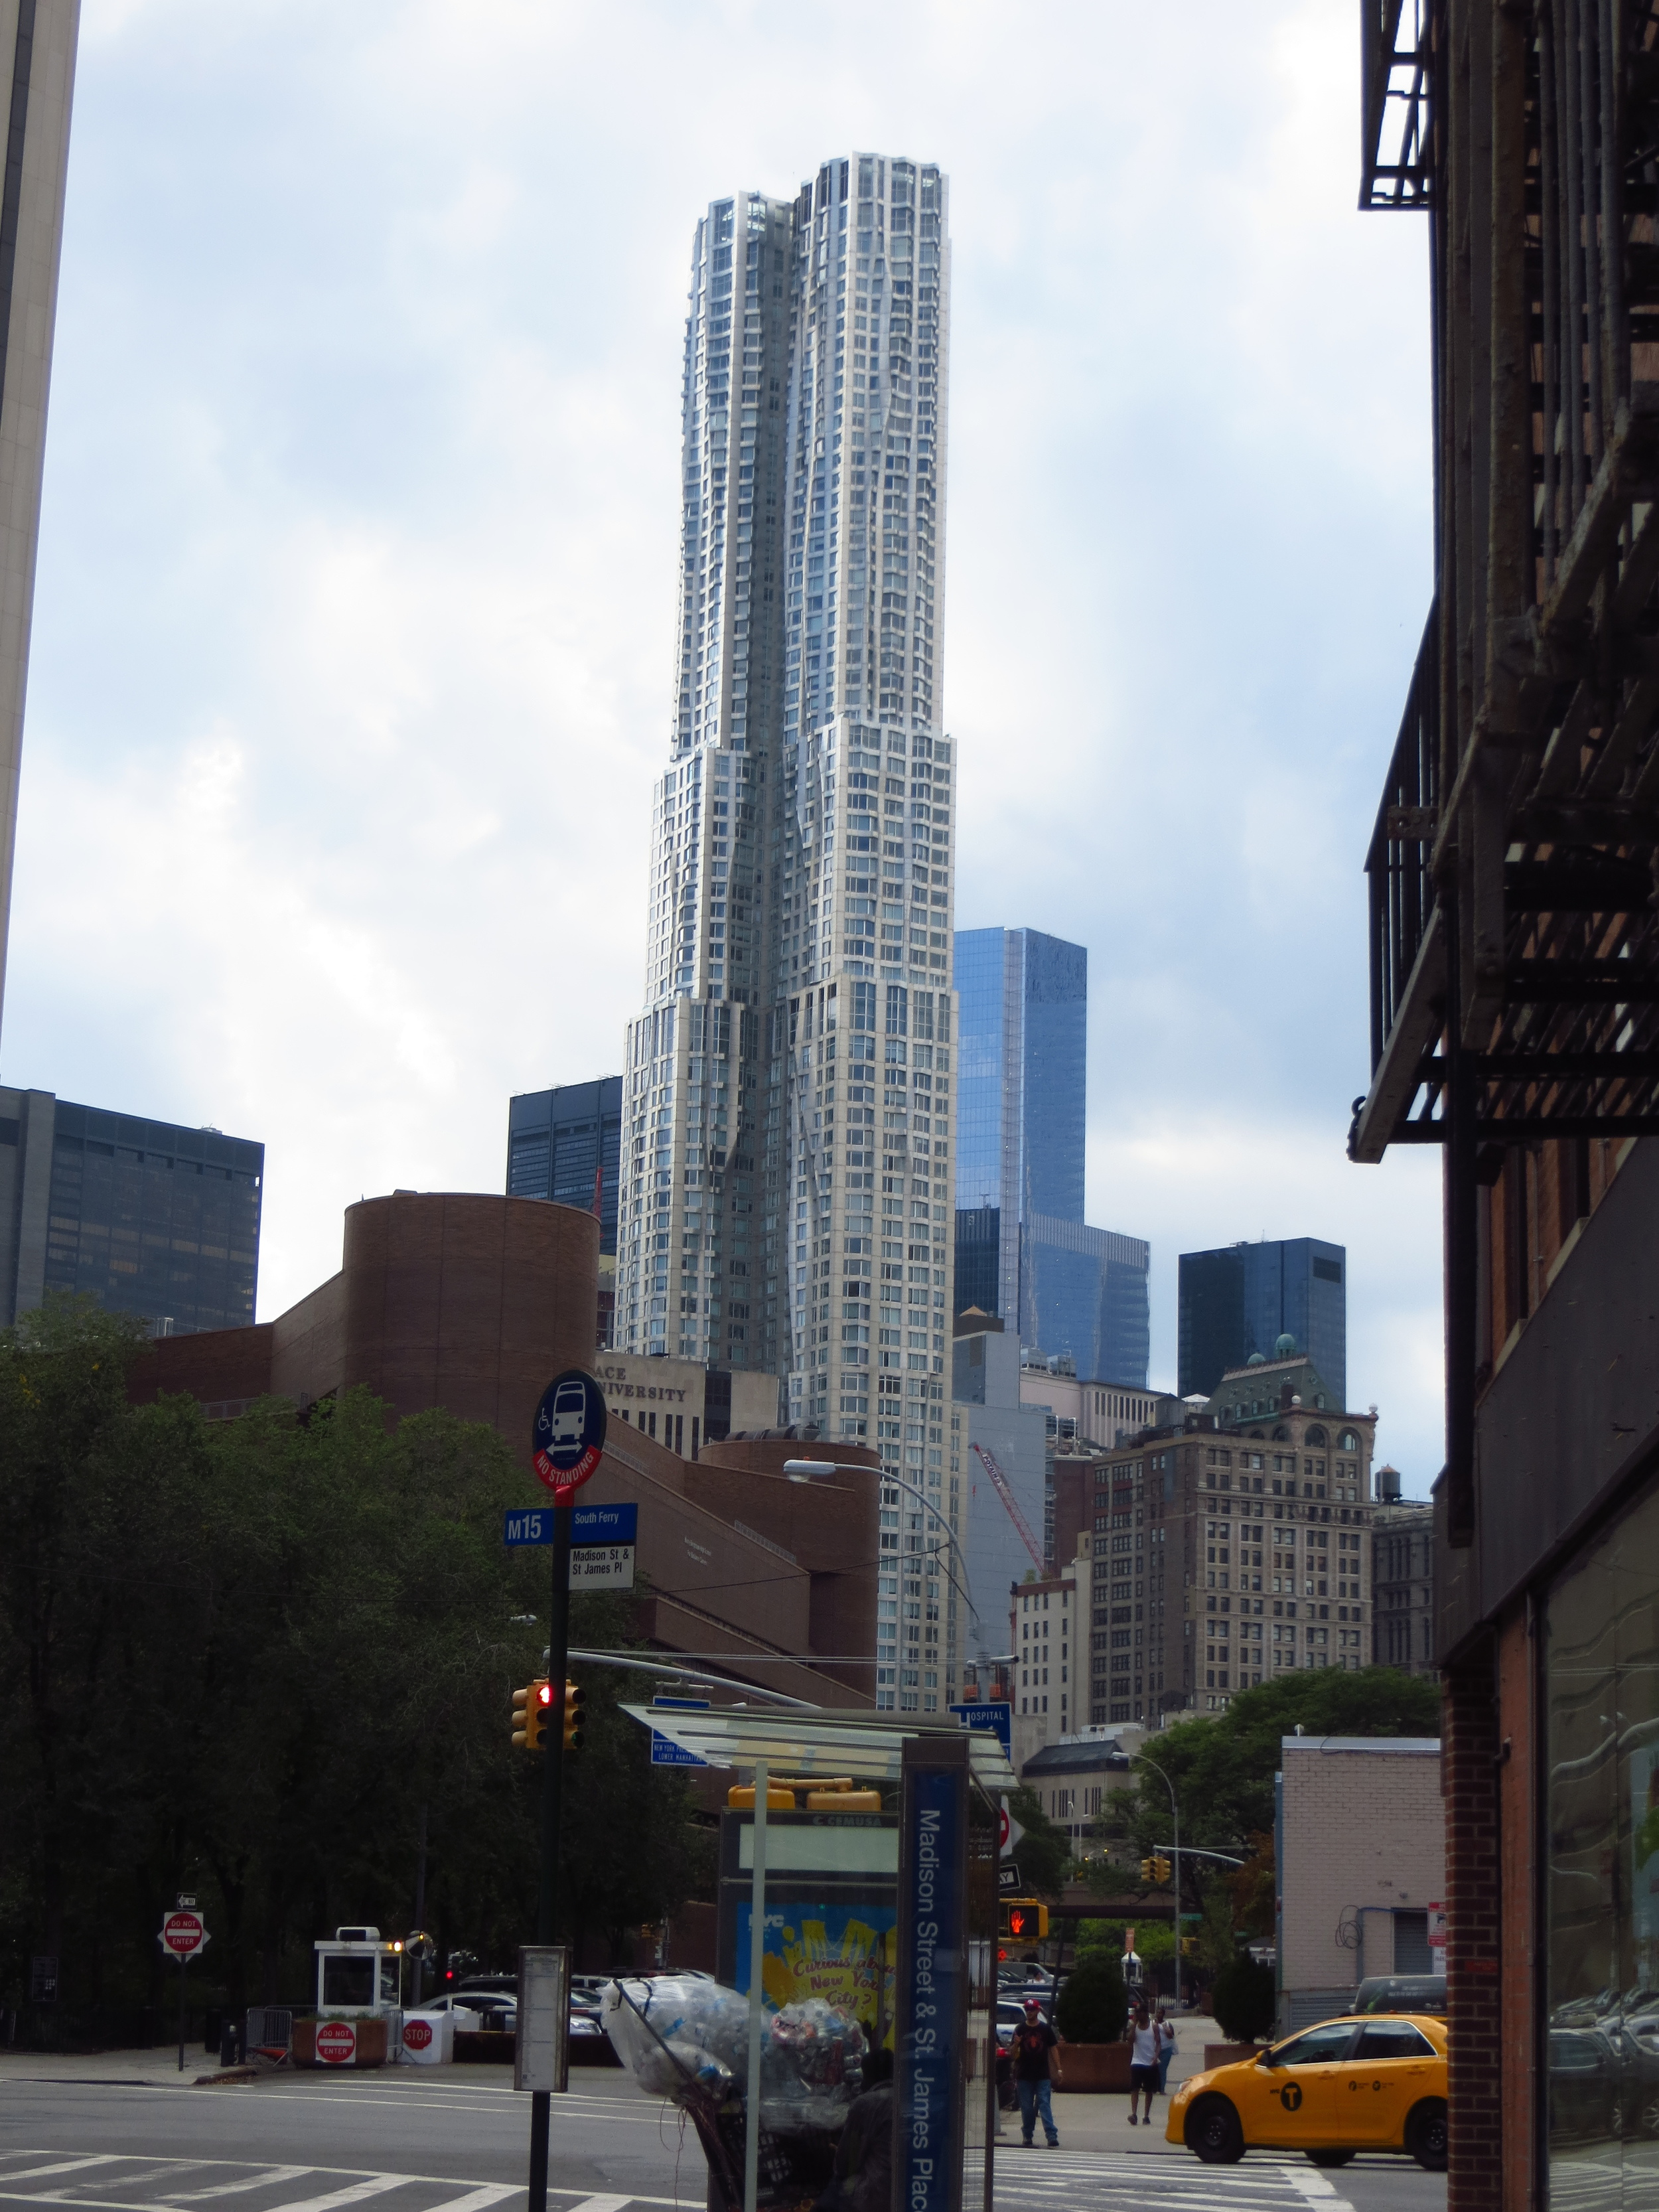 Beekman Tower (designed by Frank Gehry)